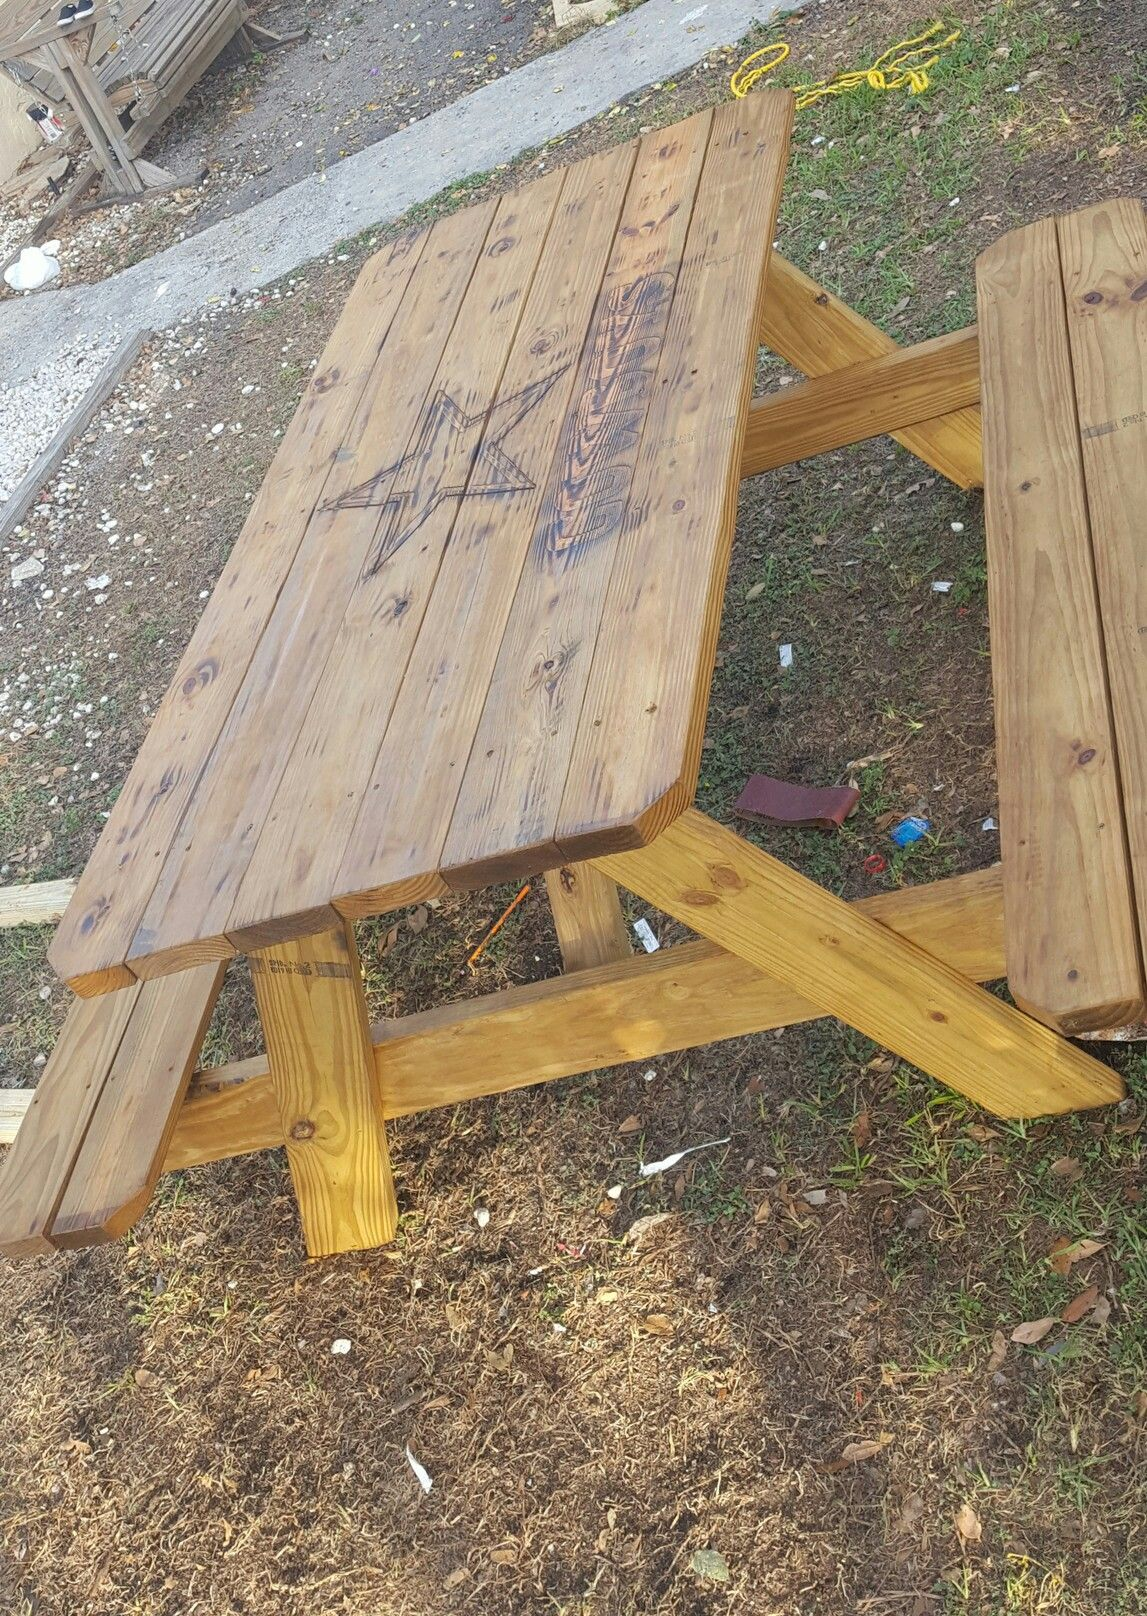 Dallas Cowboys Picnic Table My Finished Projects Pinterest - Dallas cowboys picnic table